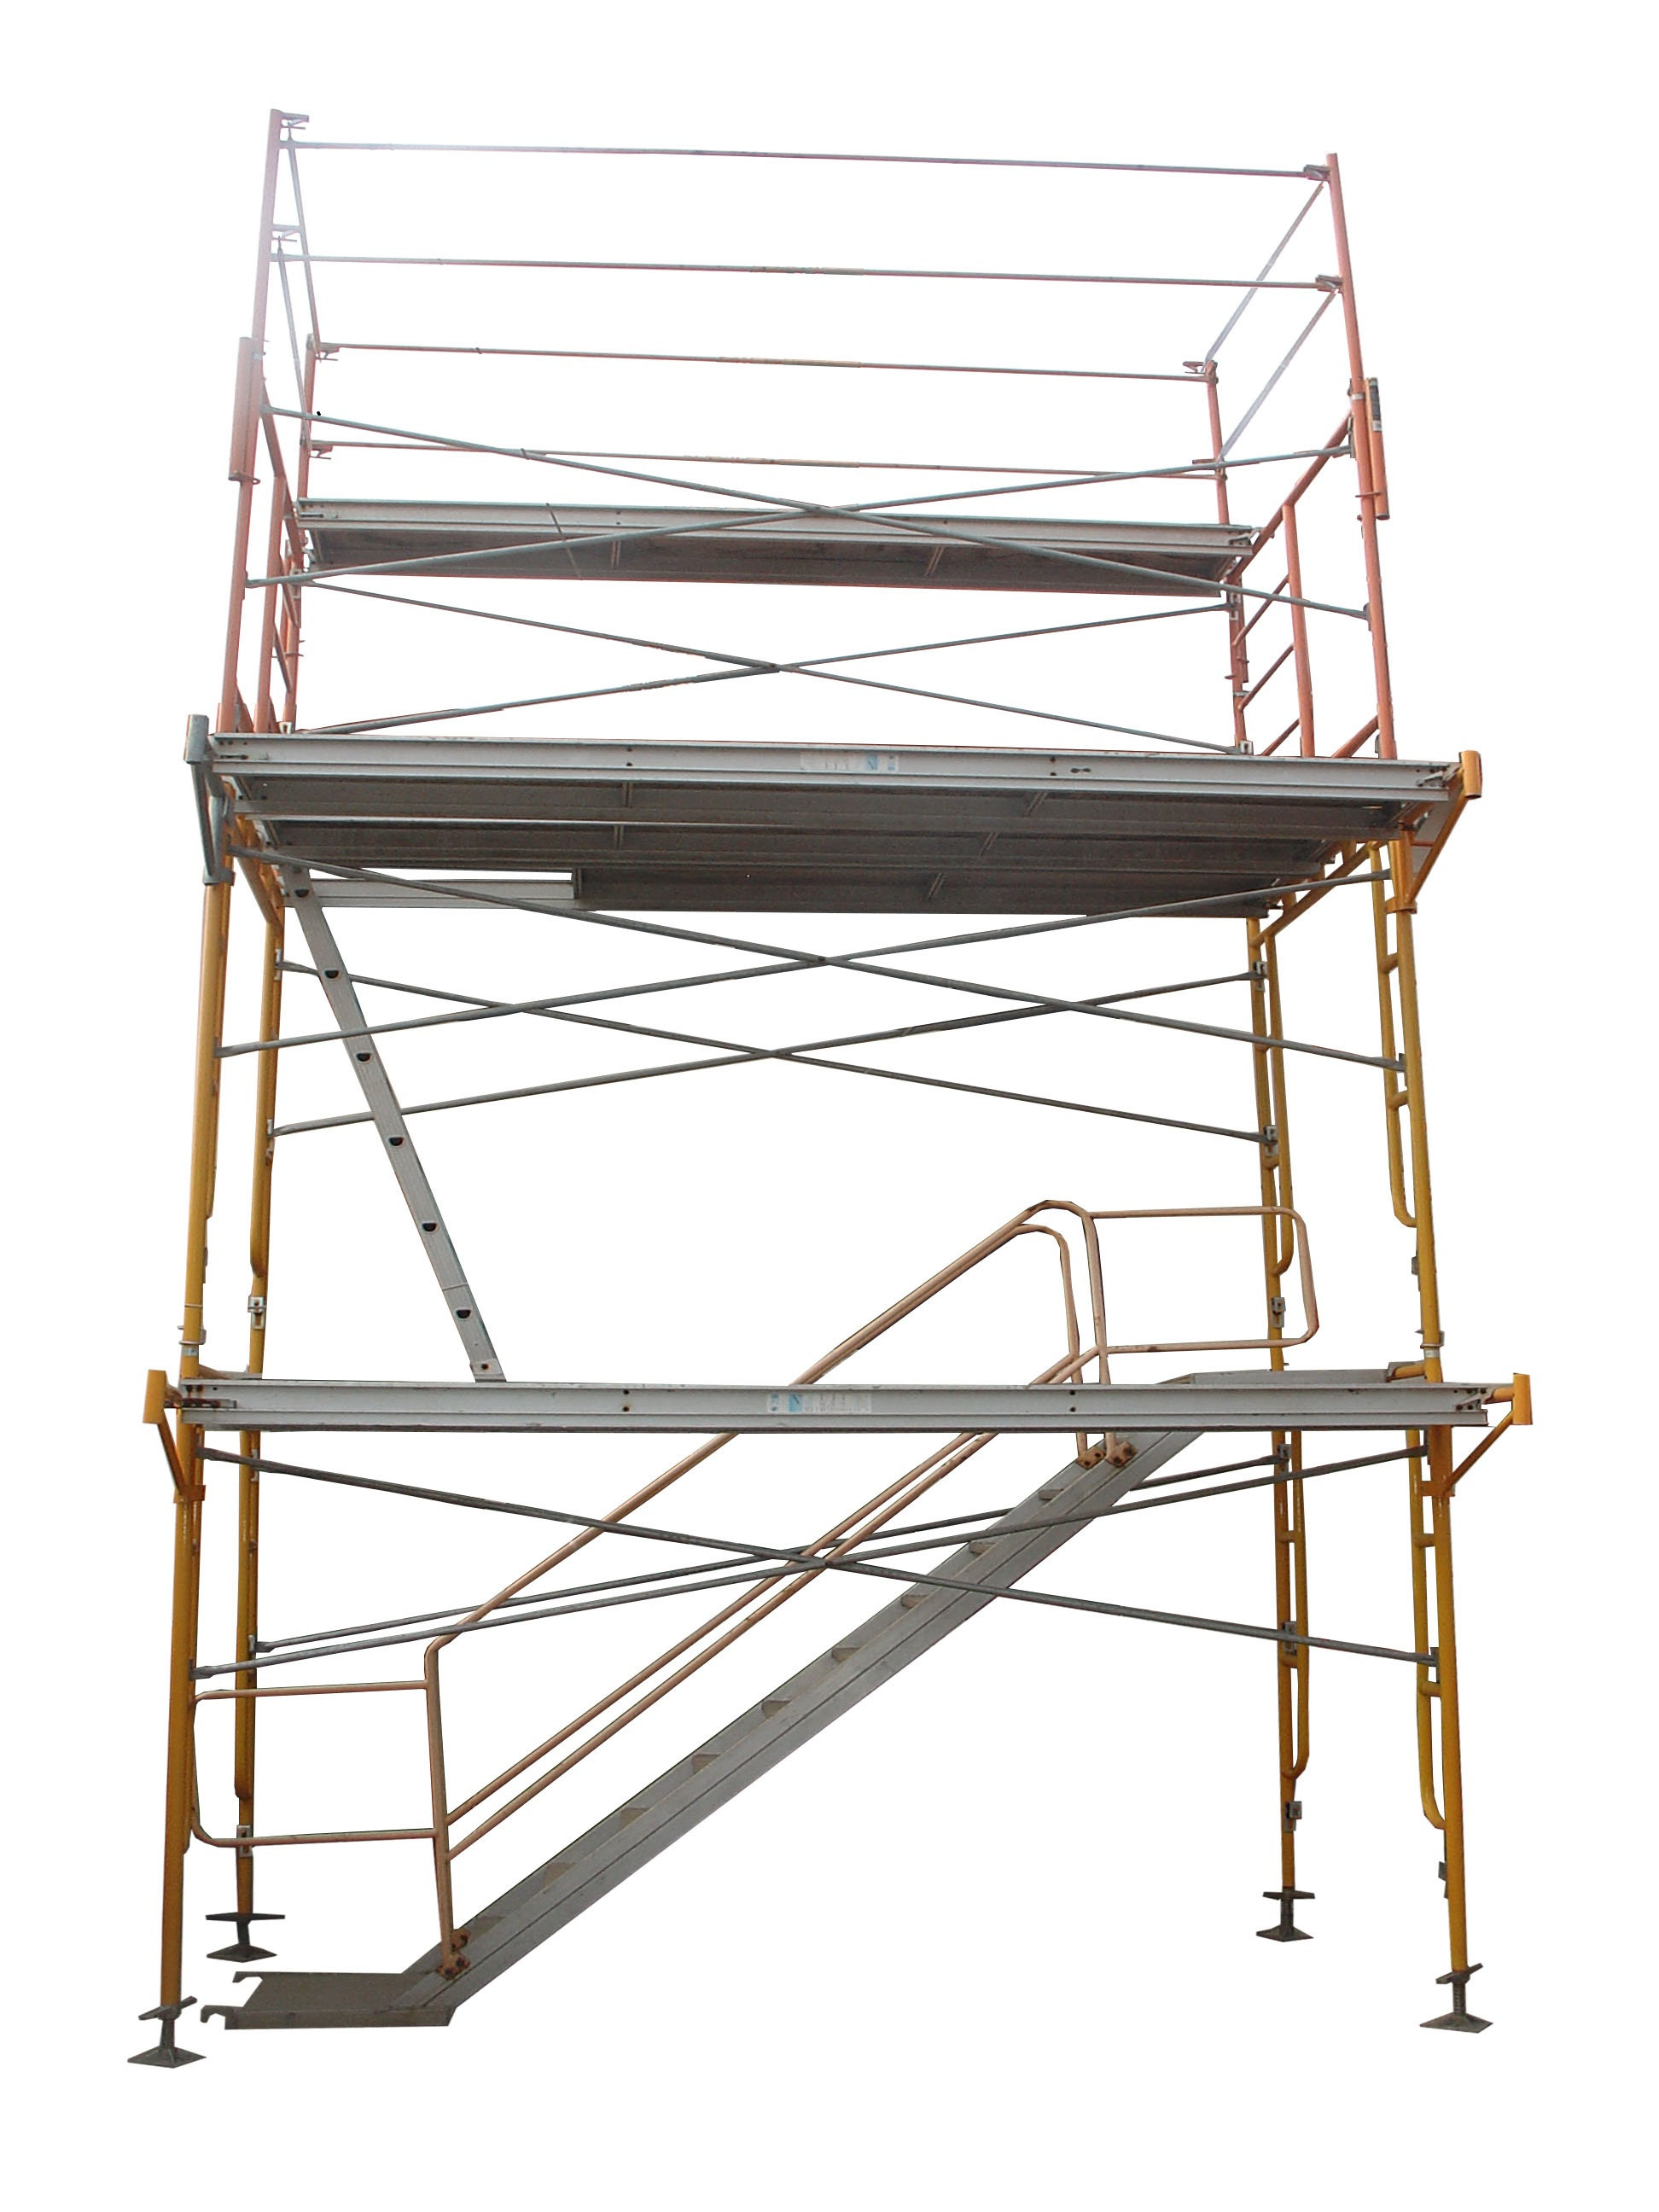 Frame scaffolding and accessories